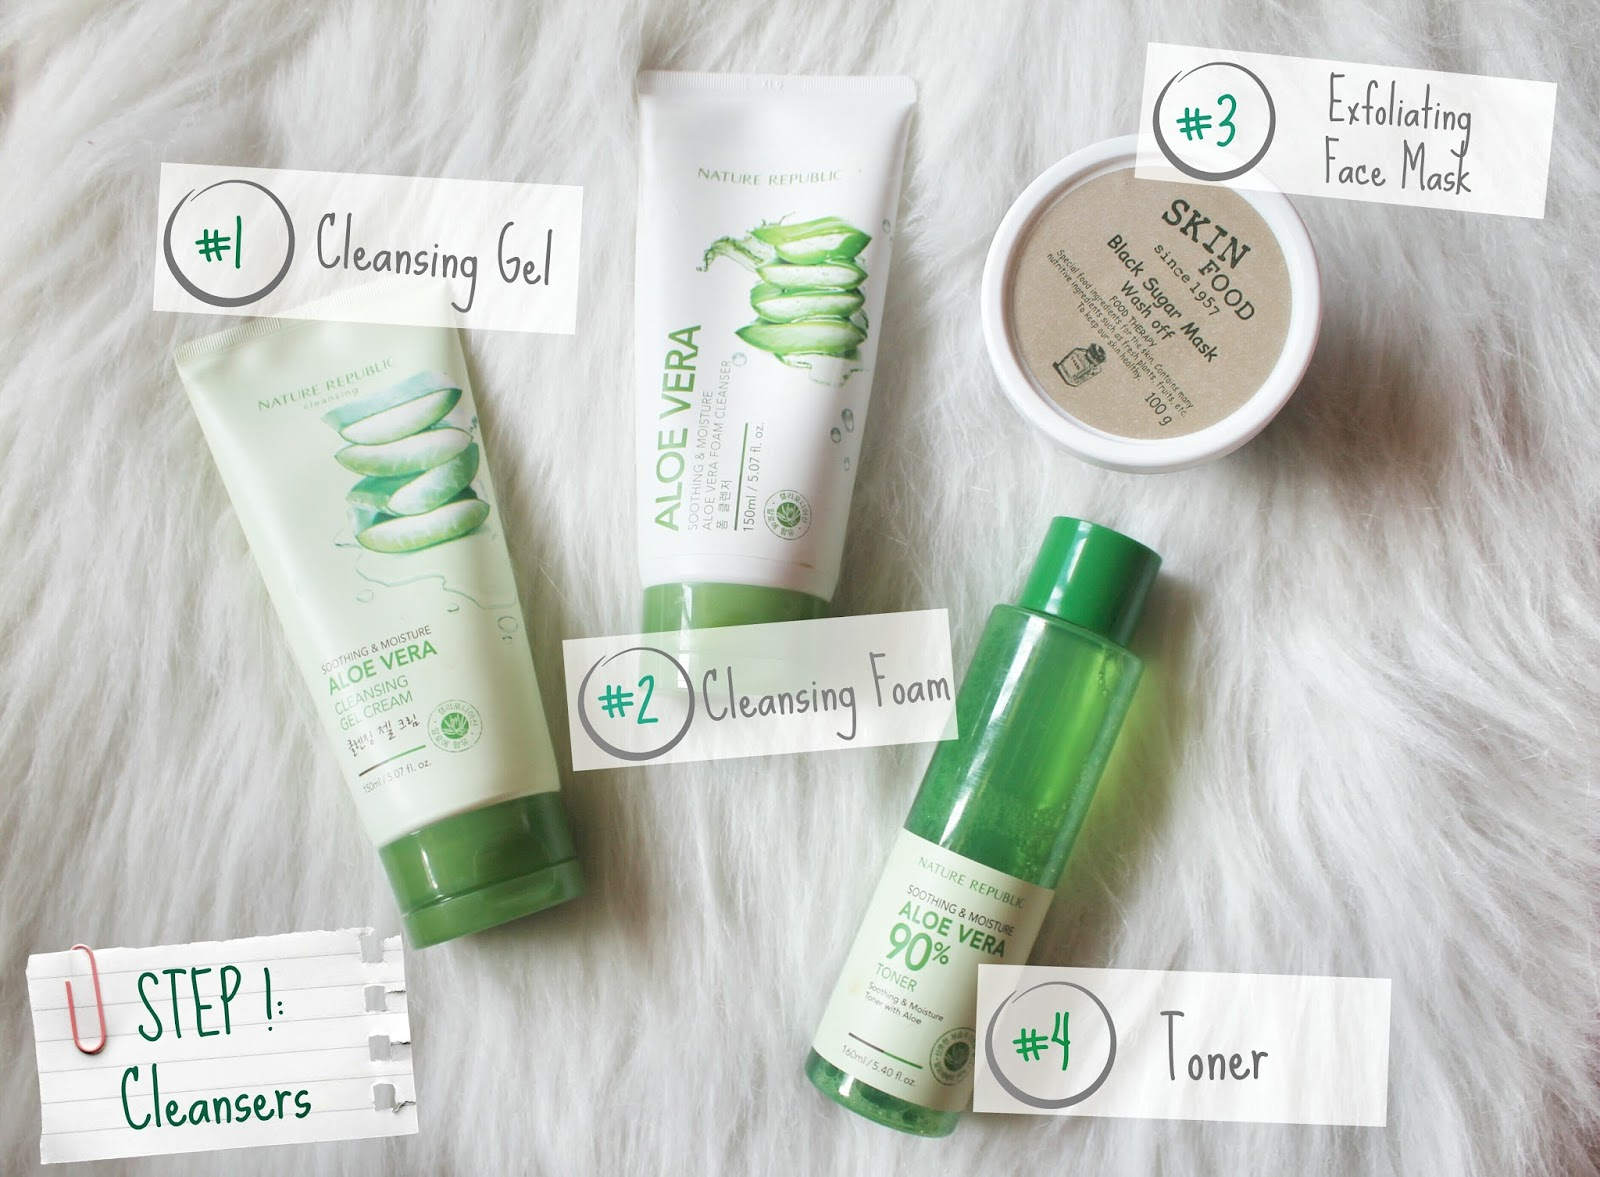 From Pimple Face To Free Part 2 Sooo Dana Nature Republic Aloe Vera Foam Cleanser This Is What I Do